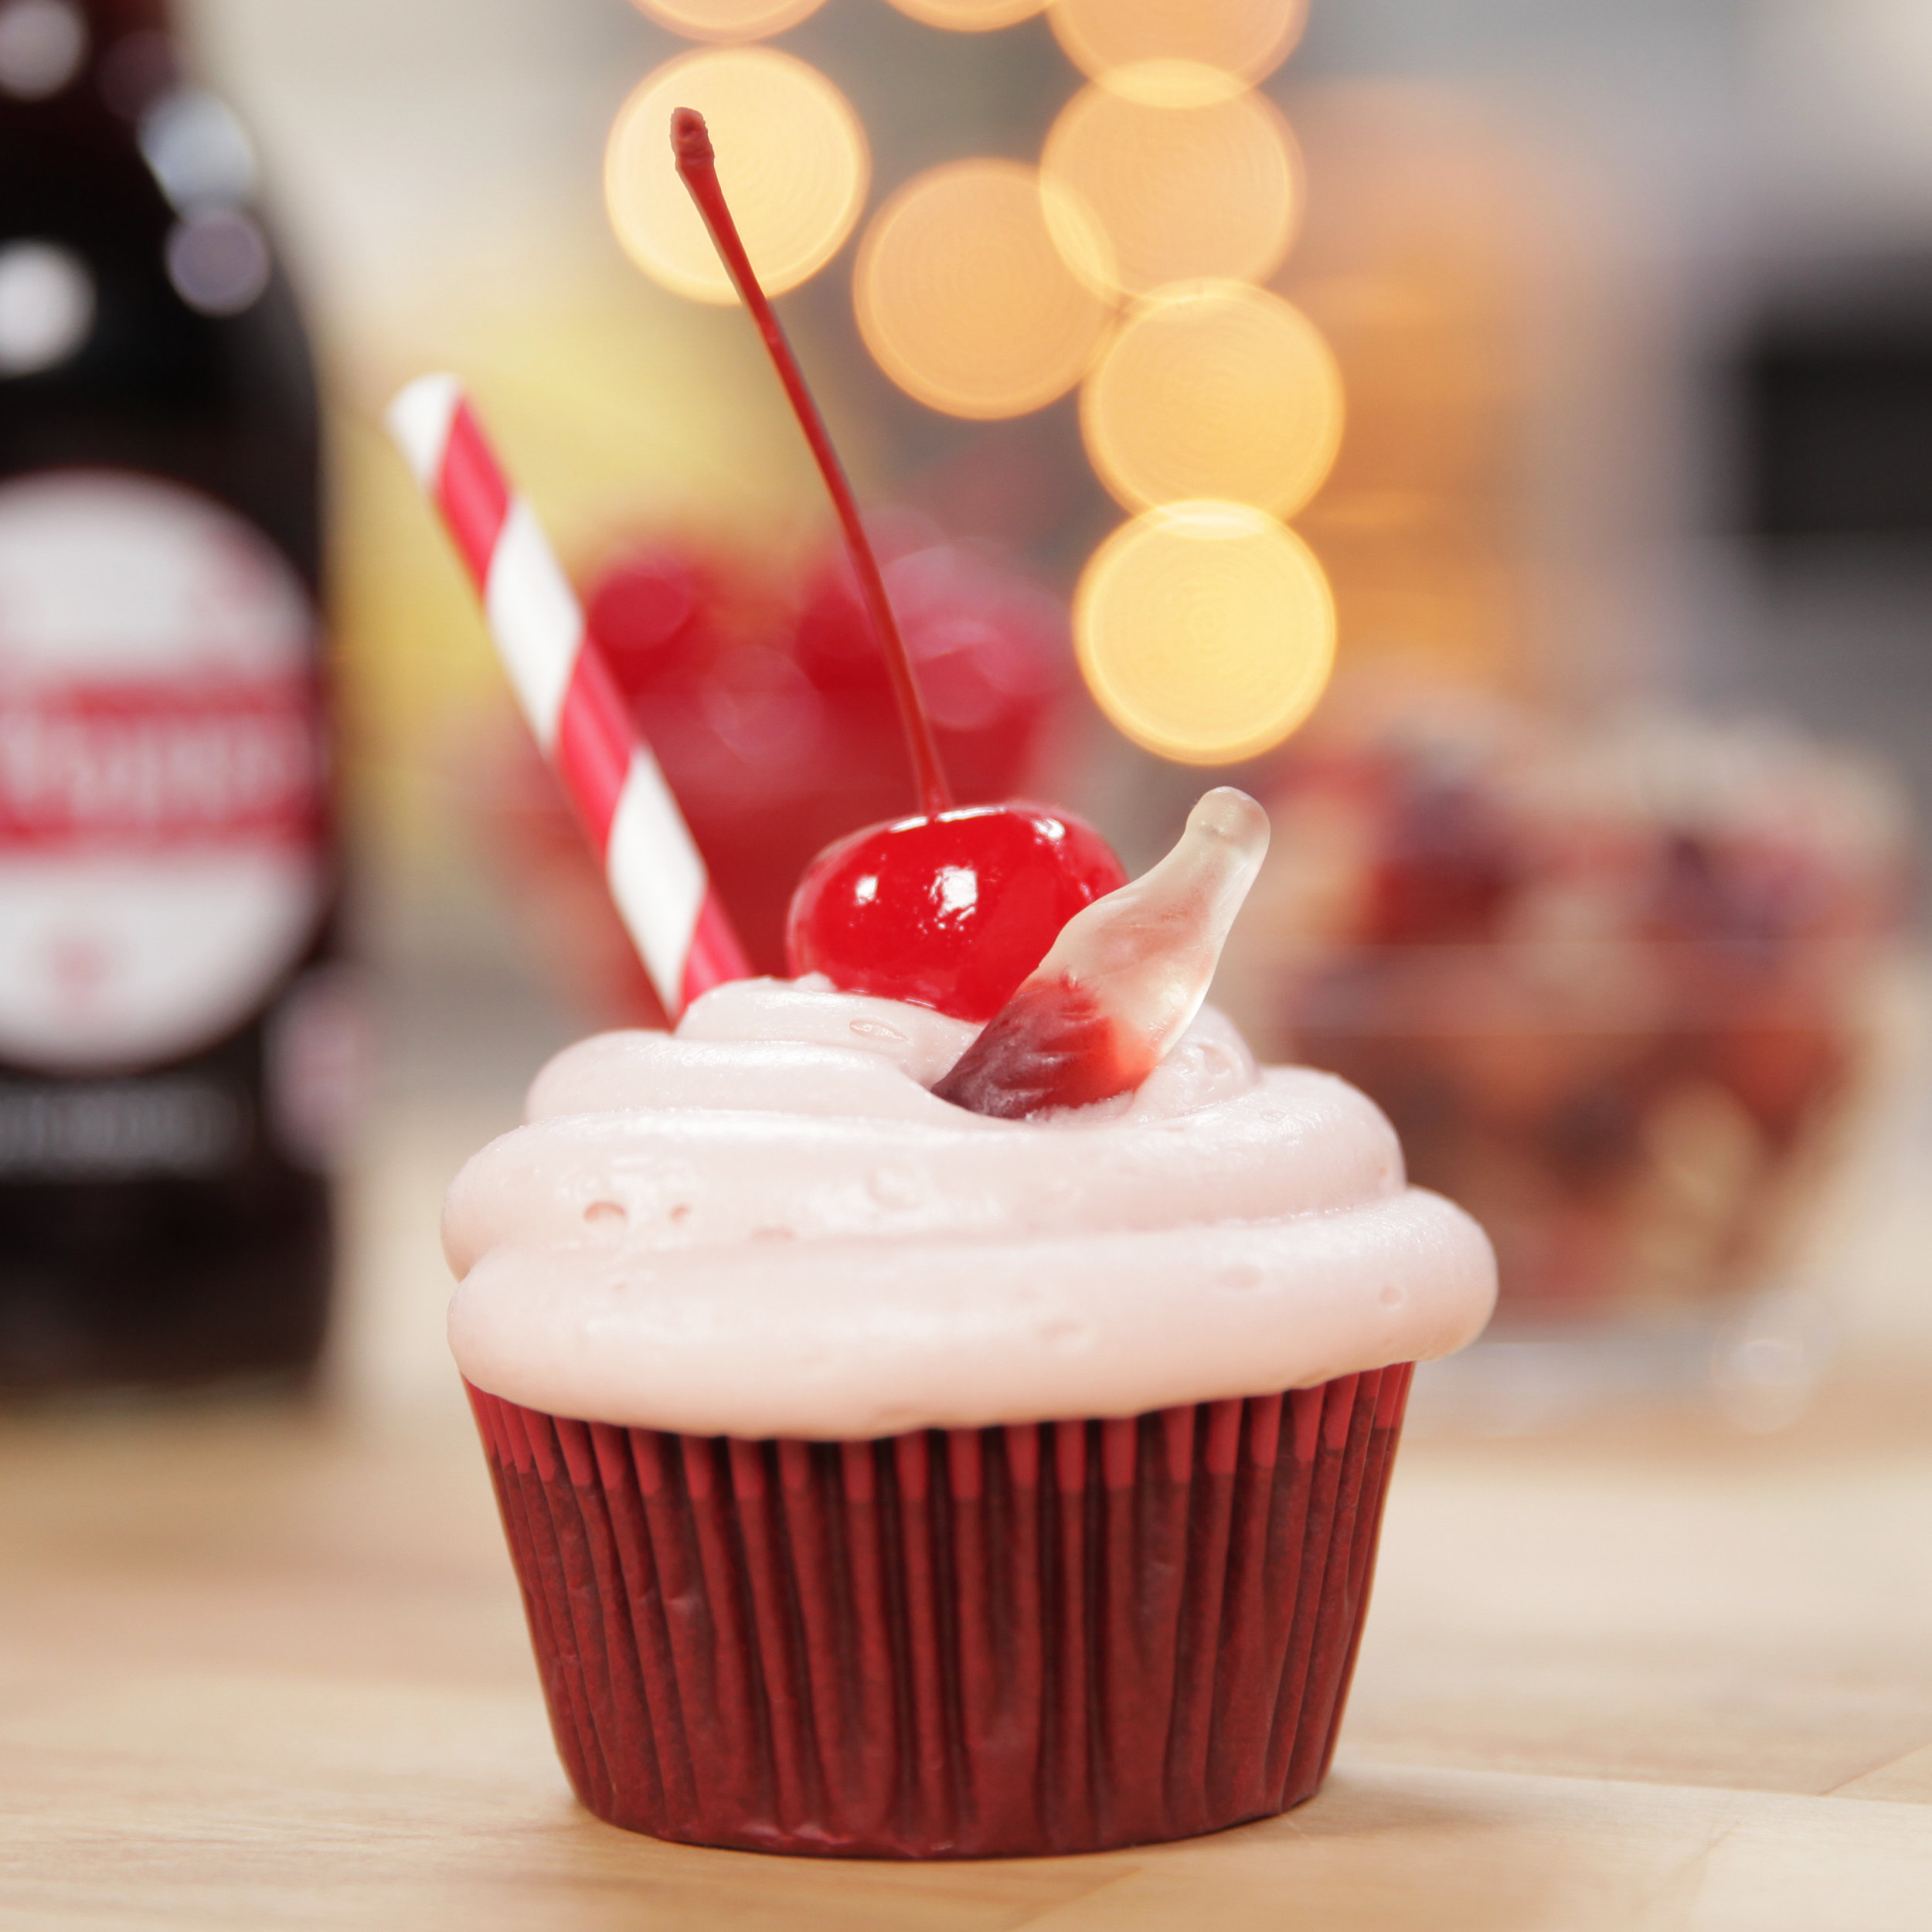 How could you resist these adorable little cuppies made with Dr. Pepper?!